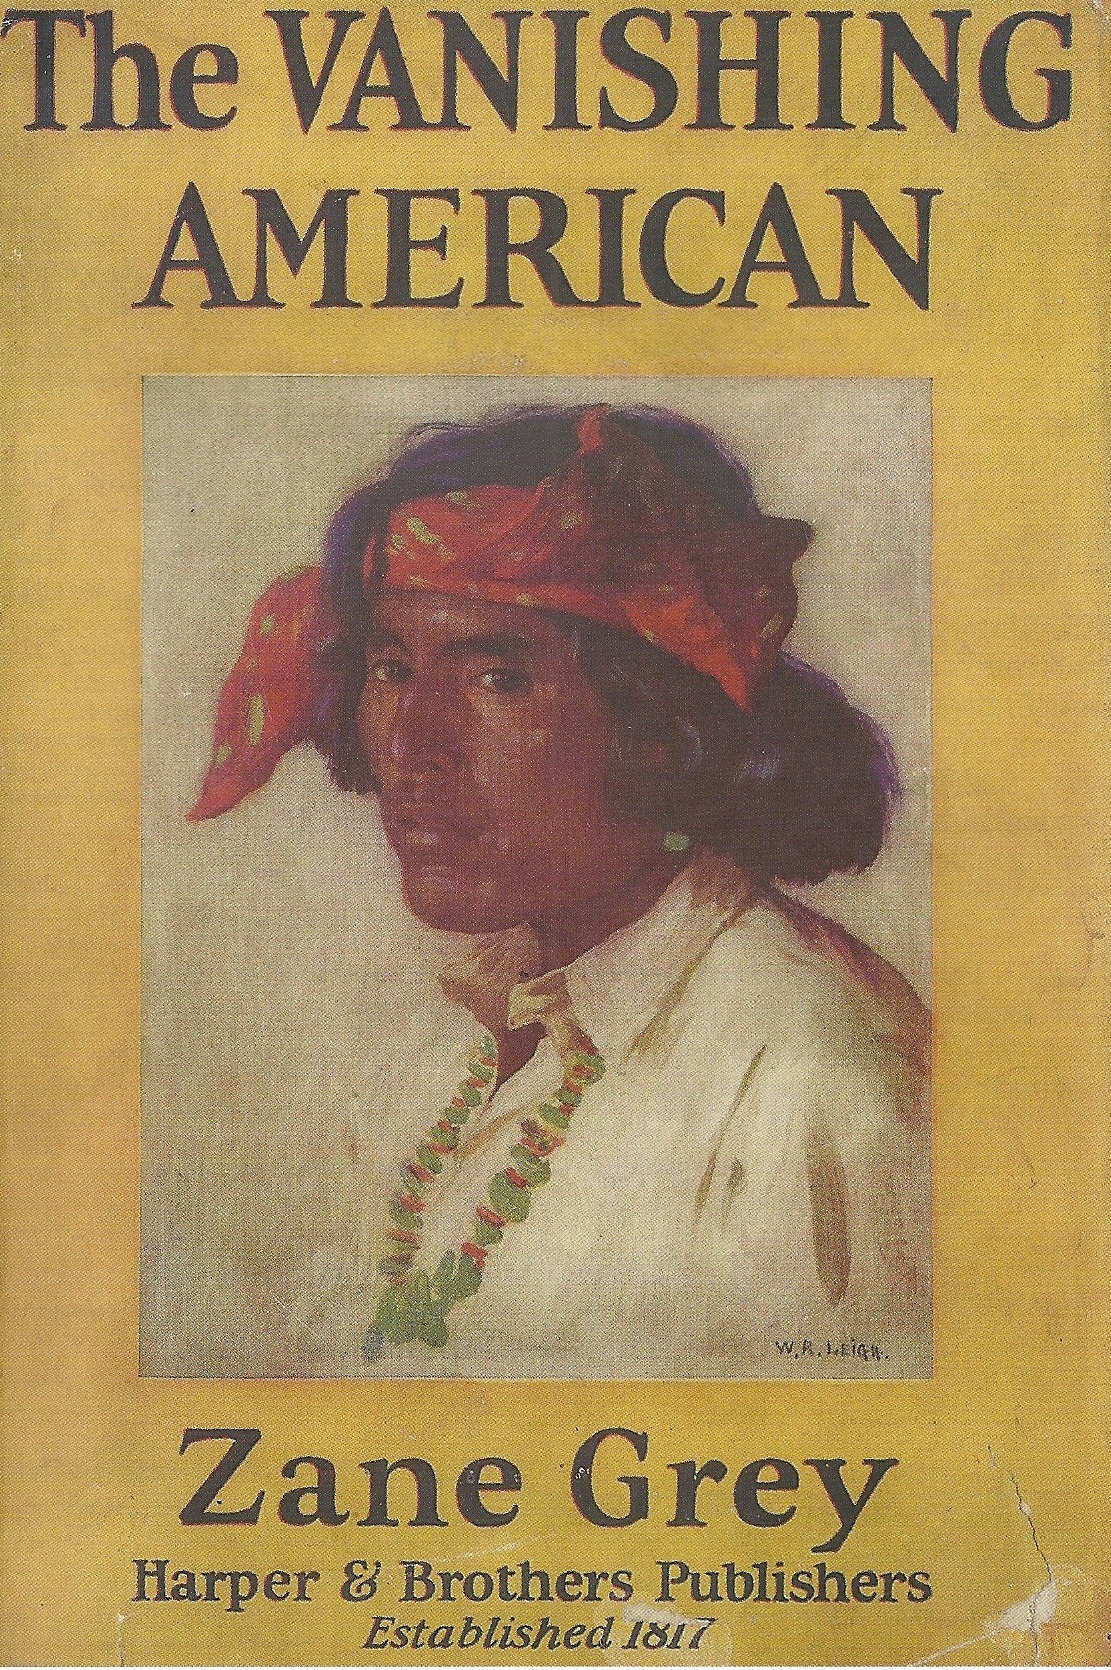 cover of novel The Vanishing American by Zane Grey